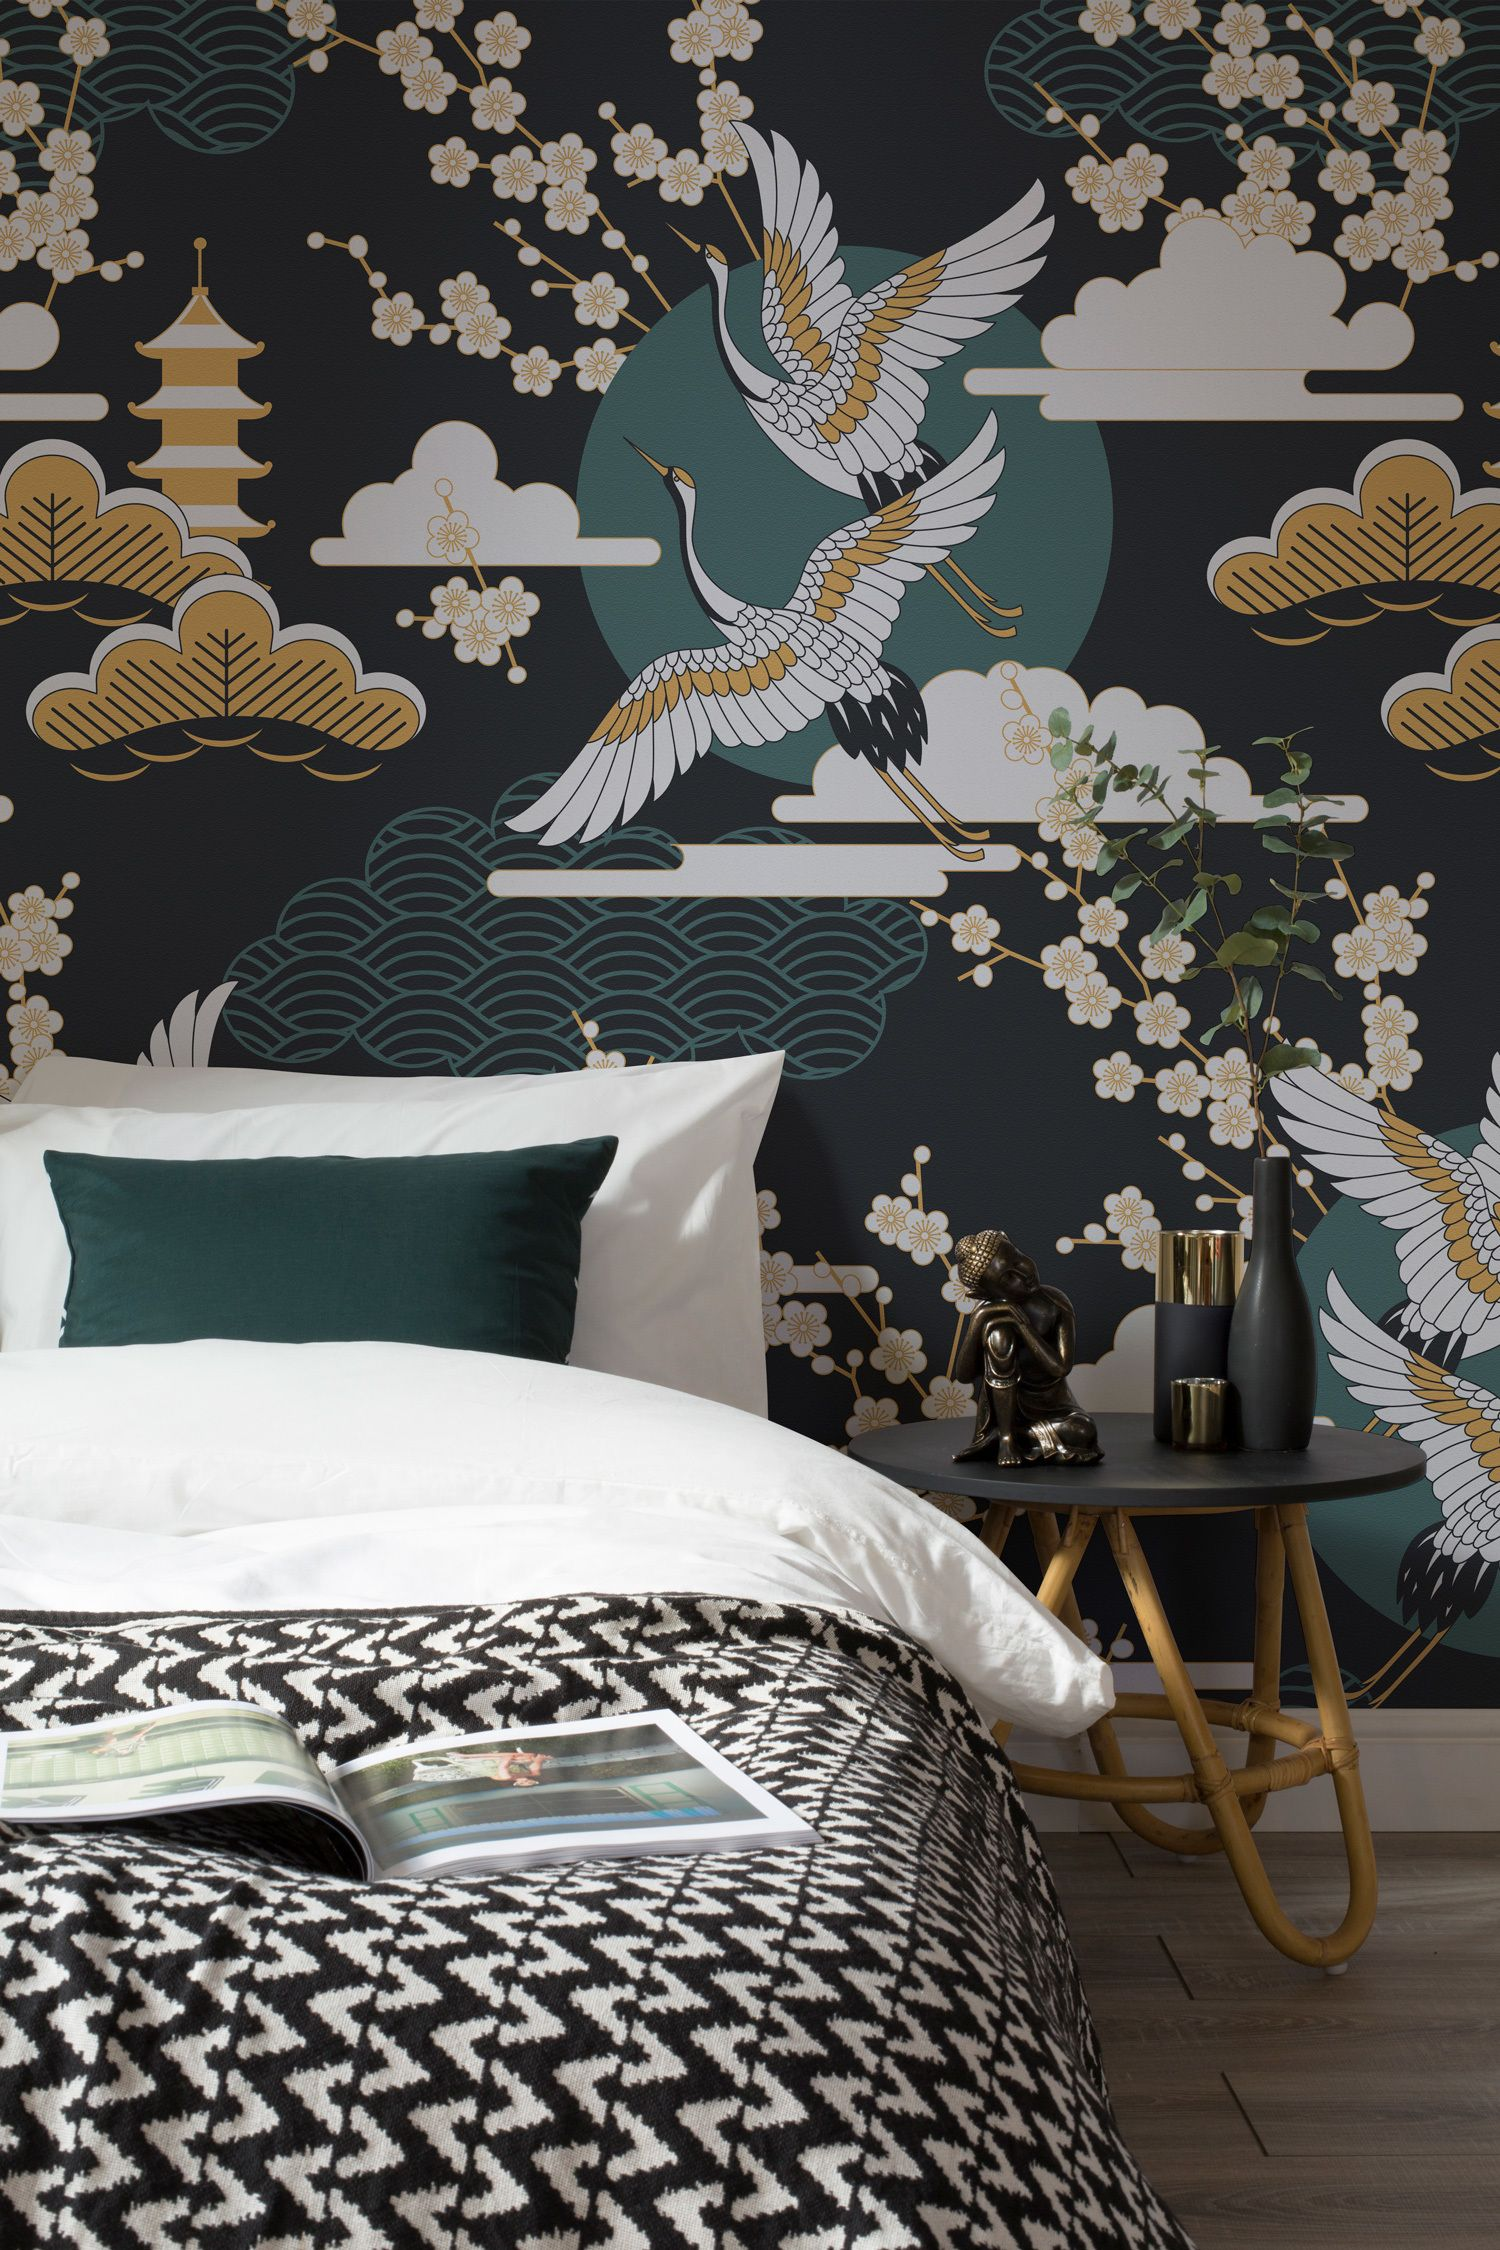 Dark And Luxurious Tones Of Emerald Green Emerge From This Decadent Oriental Wallpaper Design Pair With Black And Gold Accessories To Complete The Look